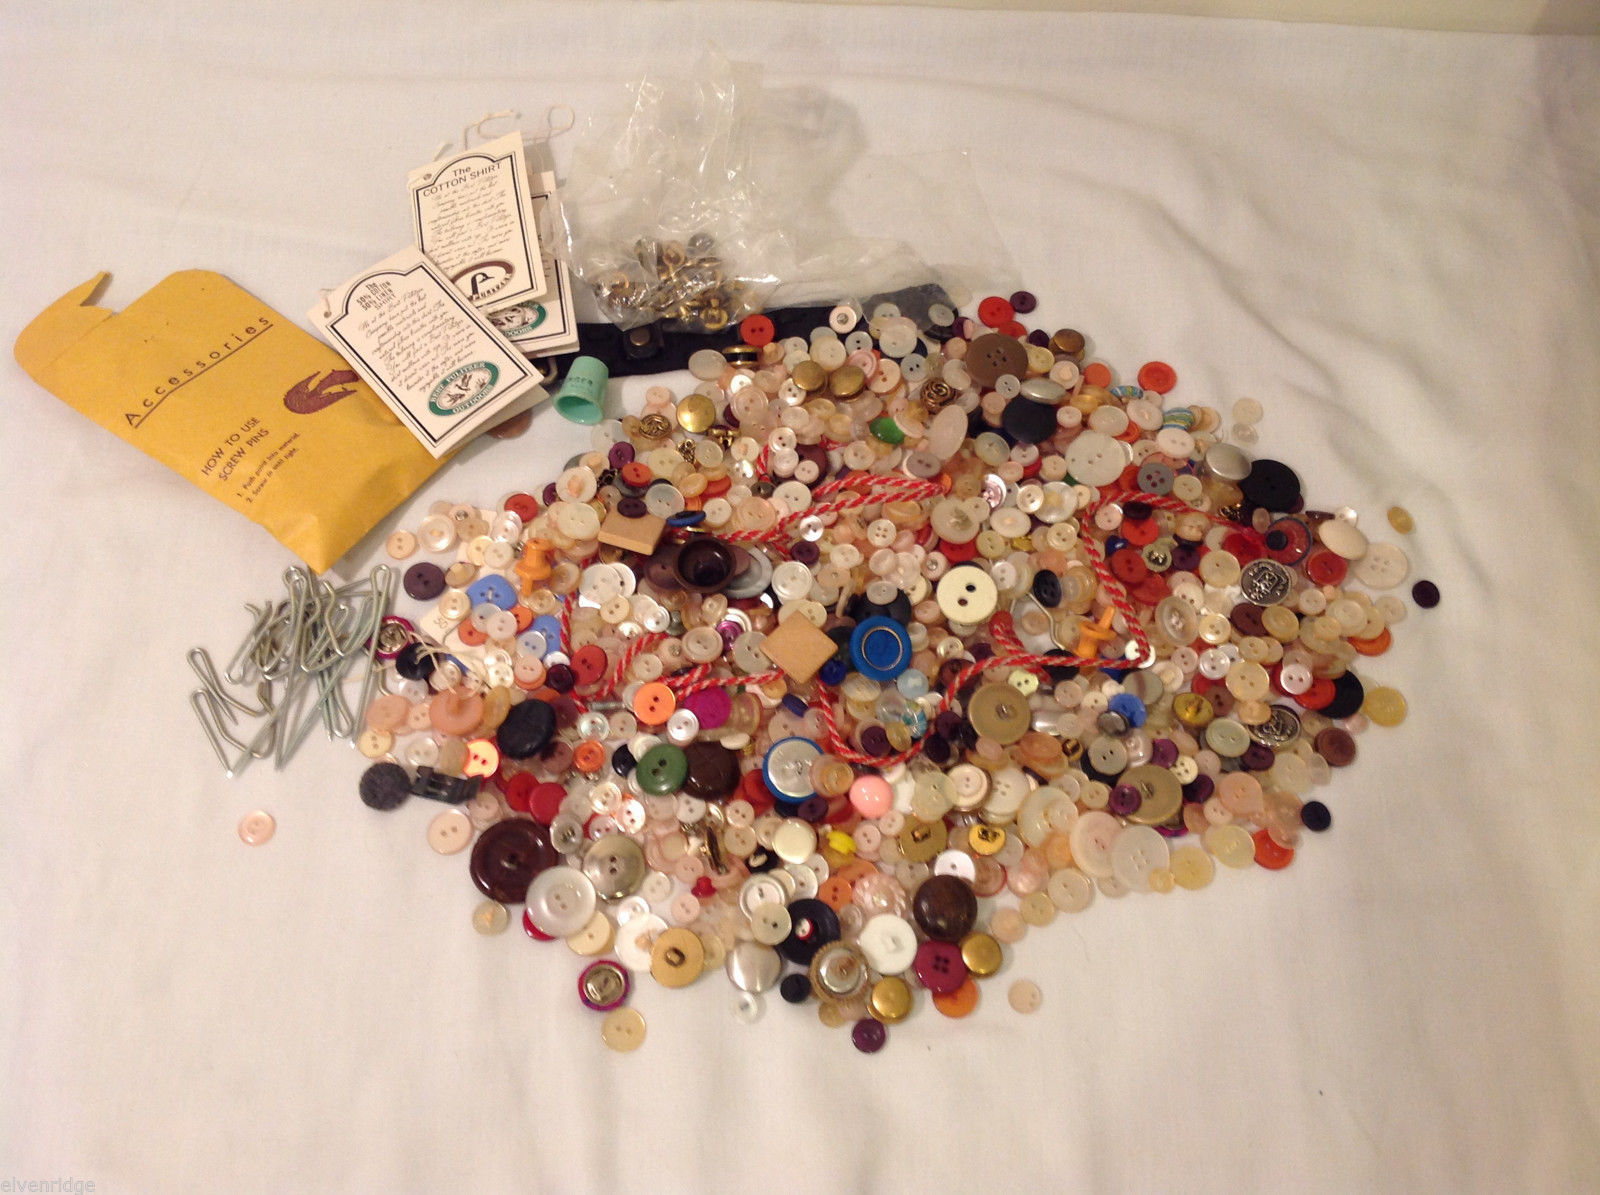 Lot of Different kind of buttons and materials for sewing and crafting